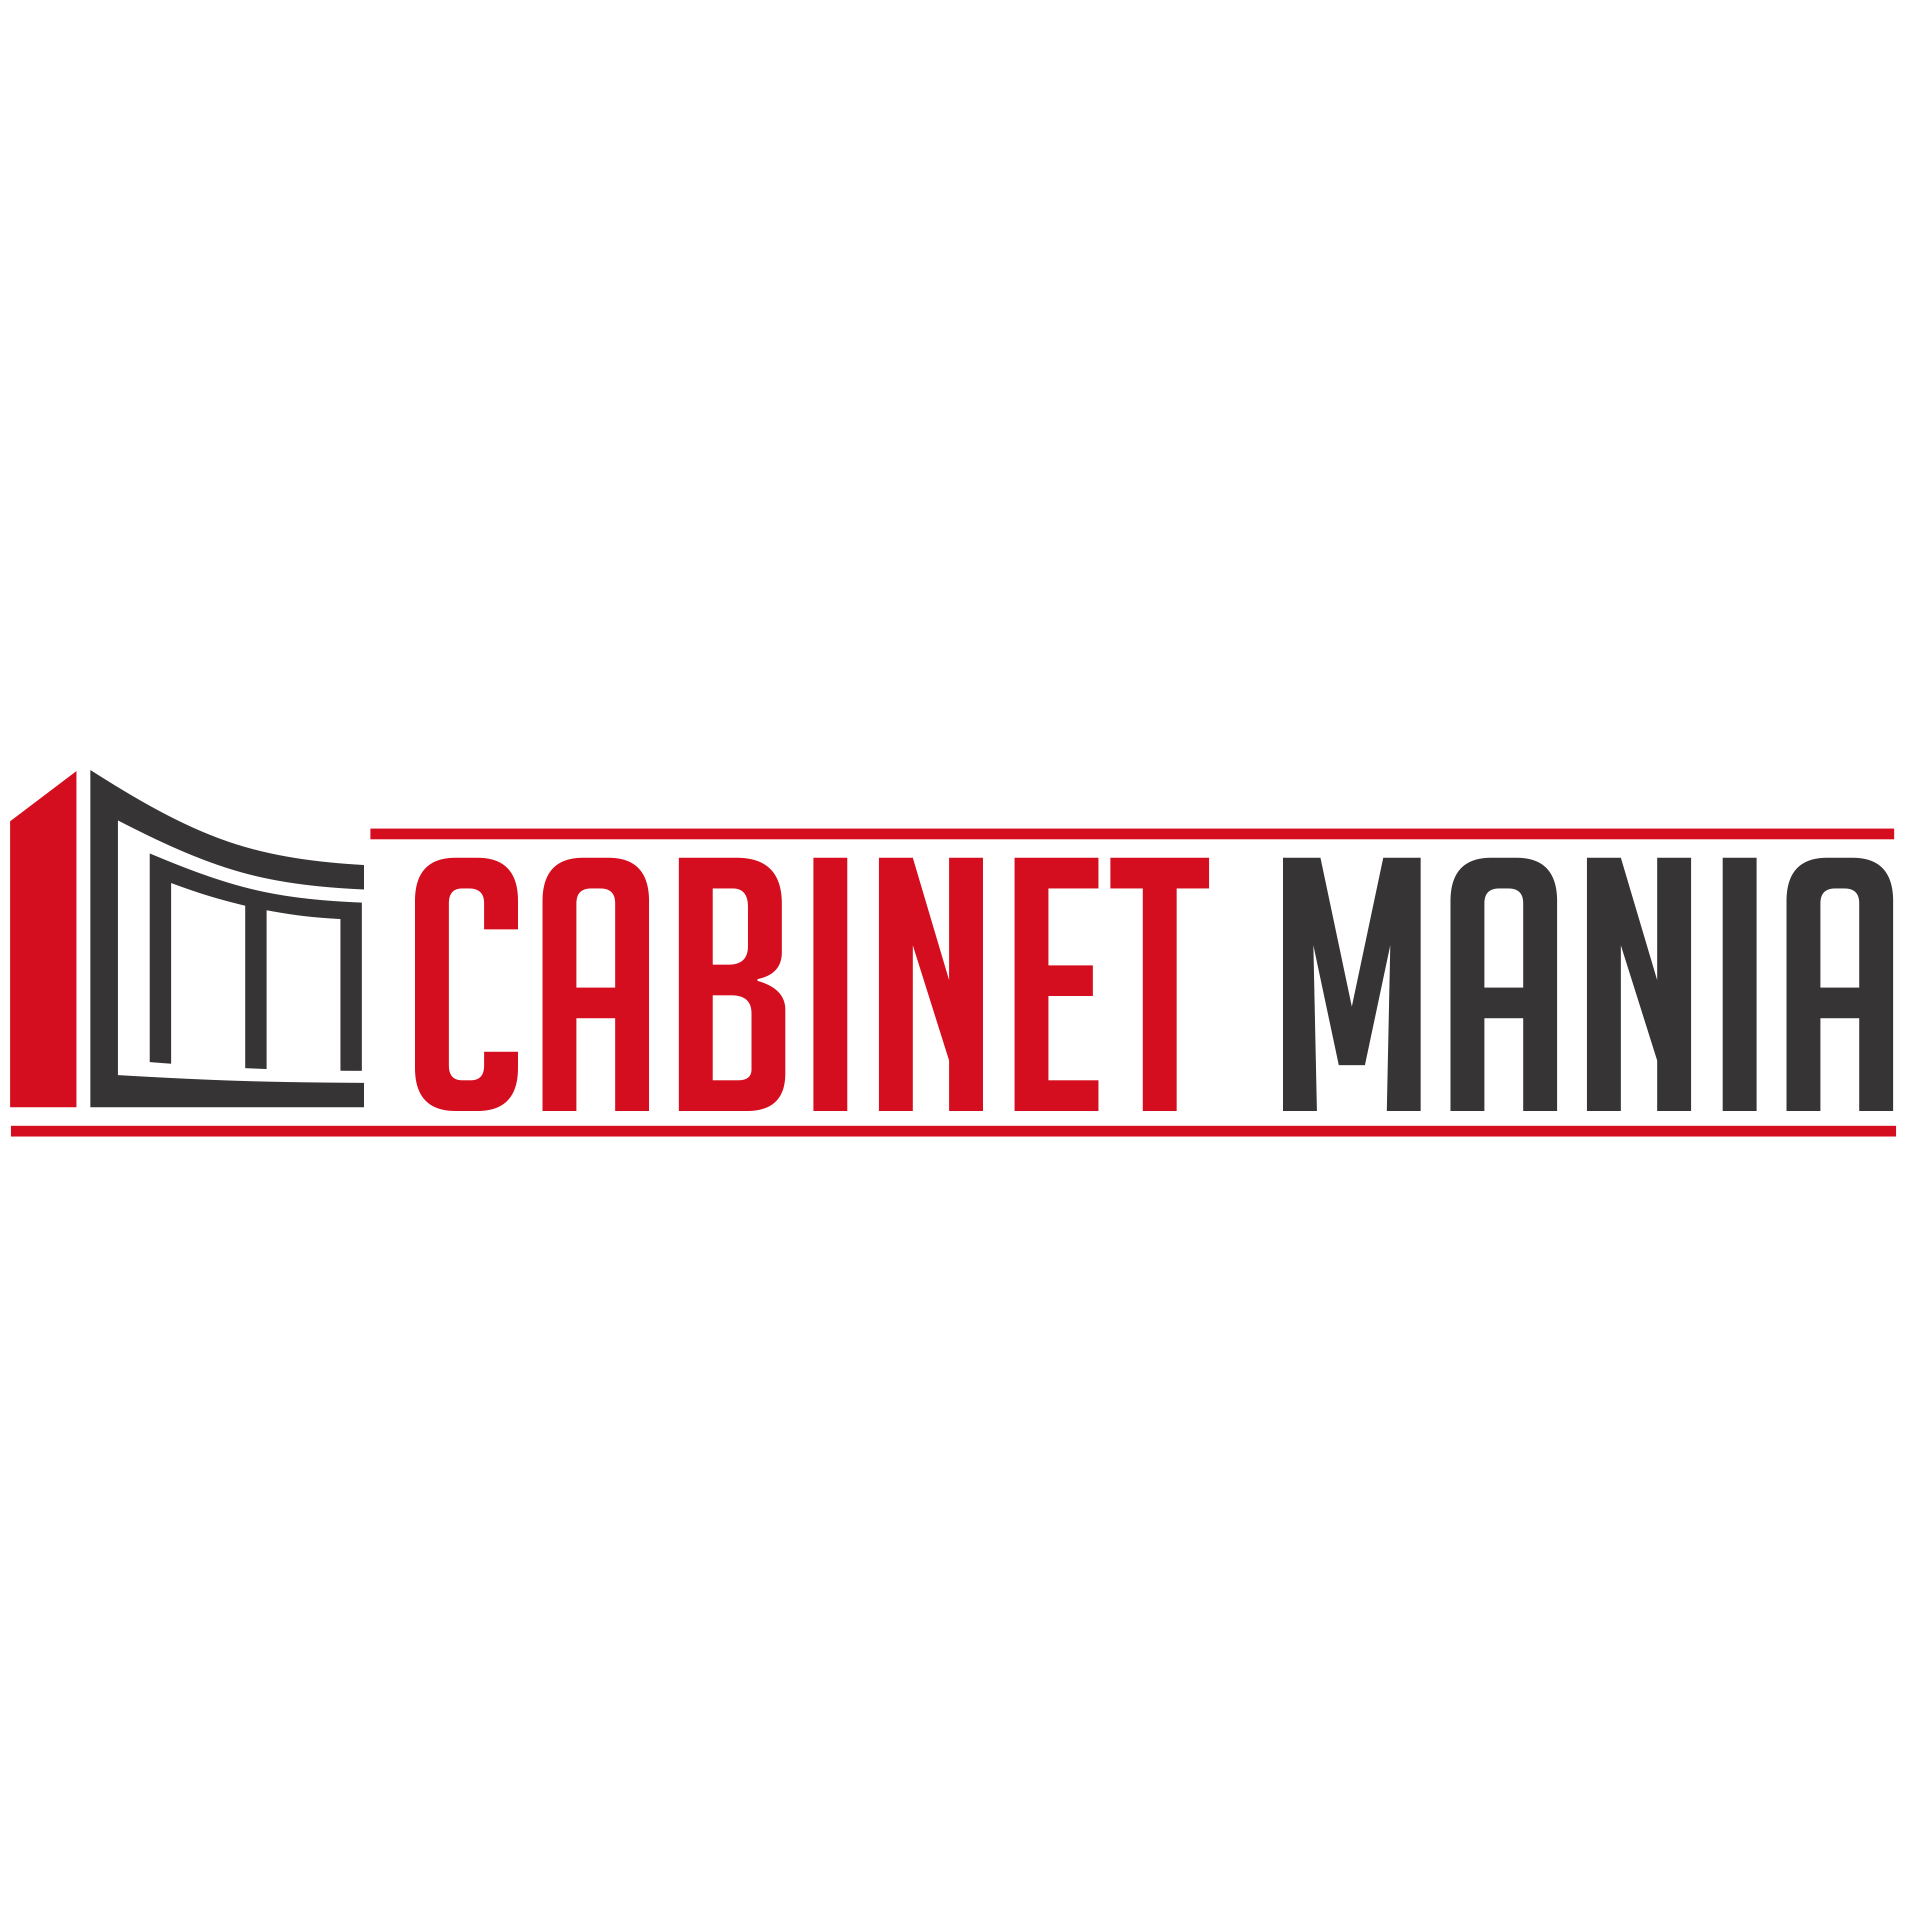 Cabinet Mania of Munster Indiana